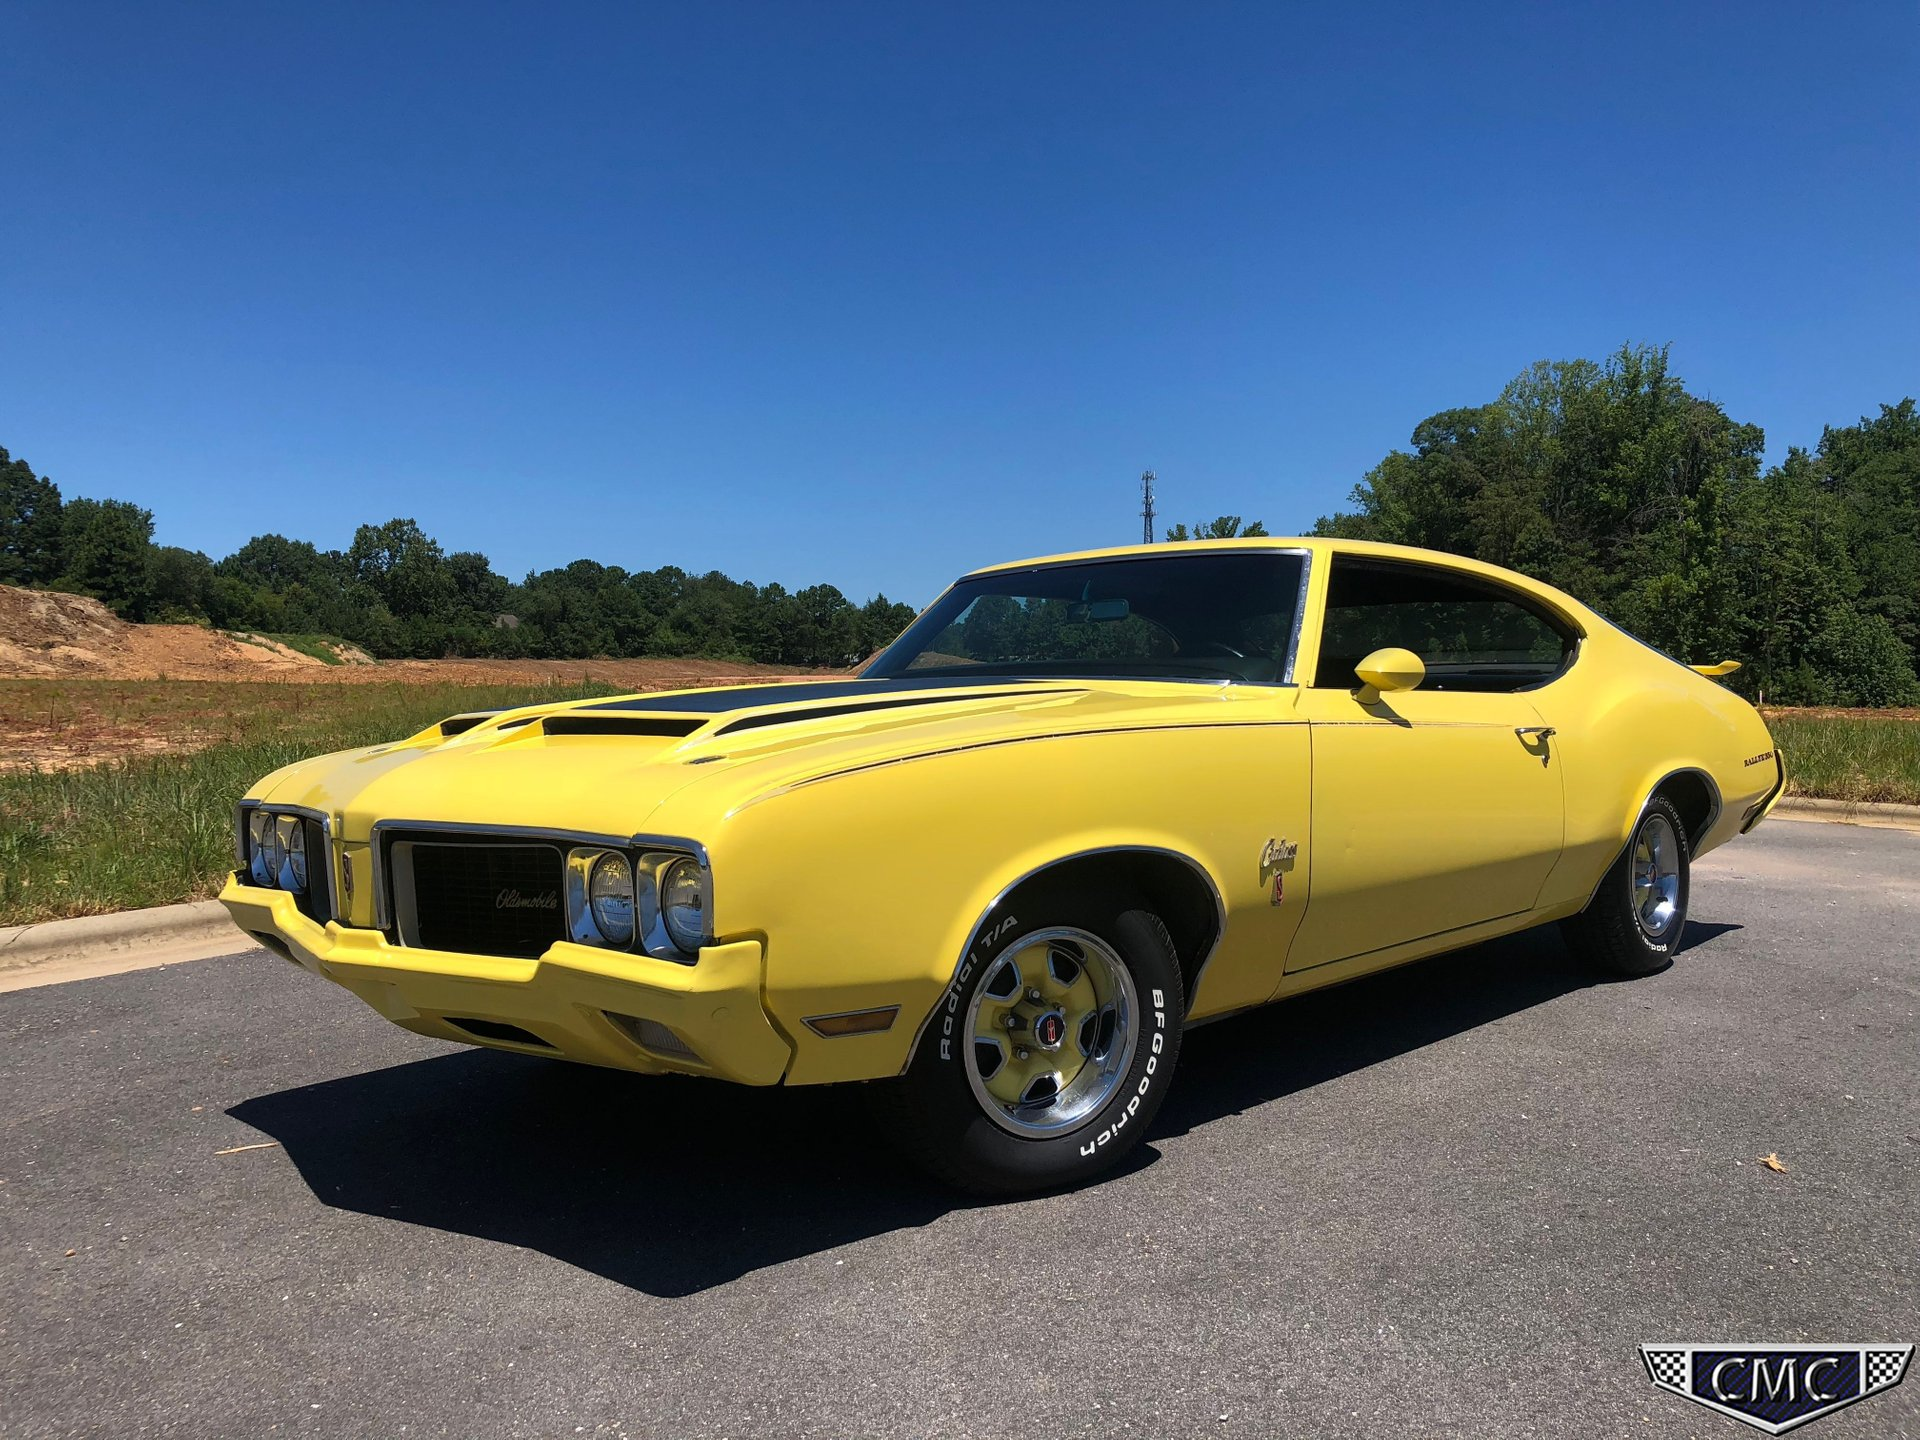 1970 Oldsmobile Rallye 350 | Carolina Muscle Cars Inc